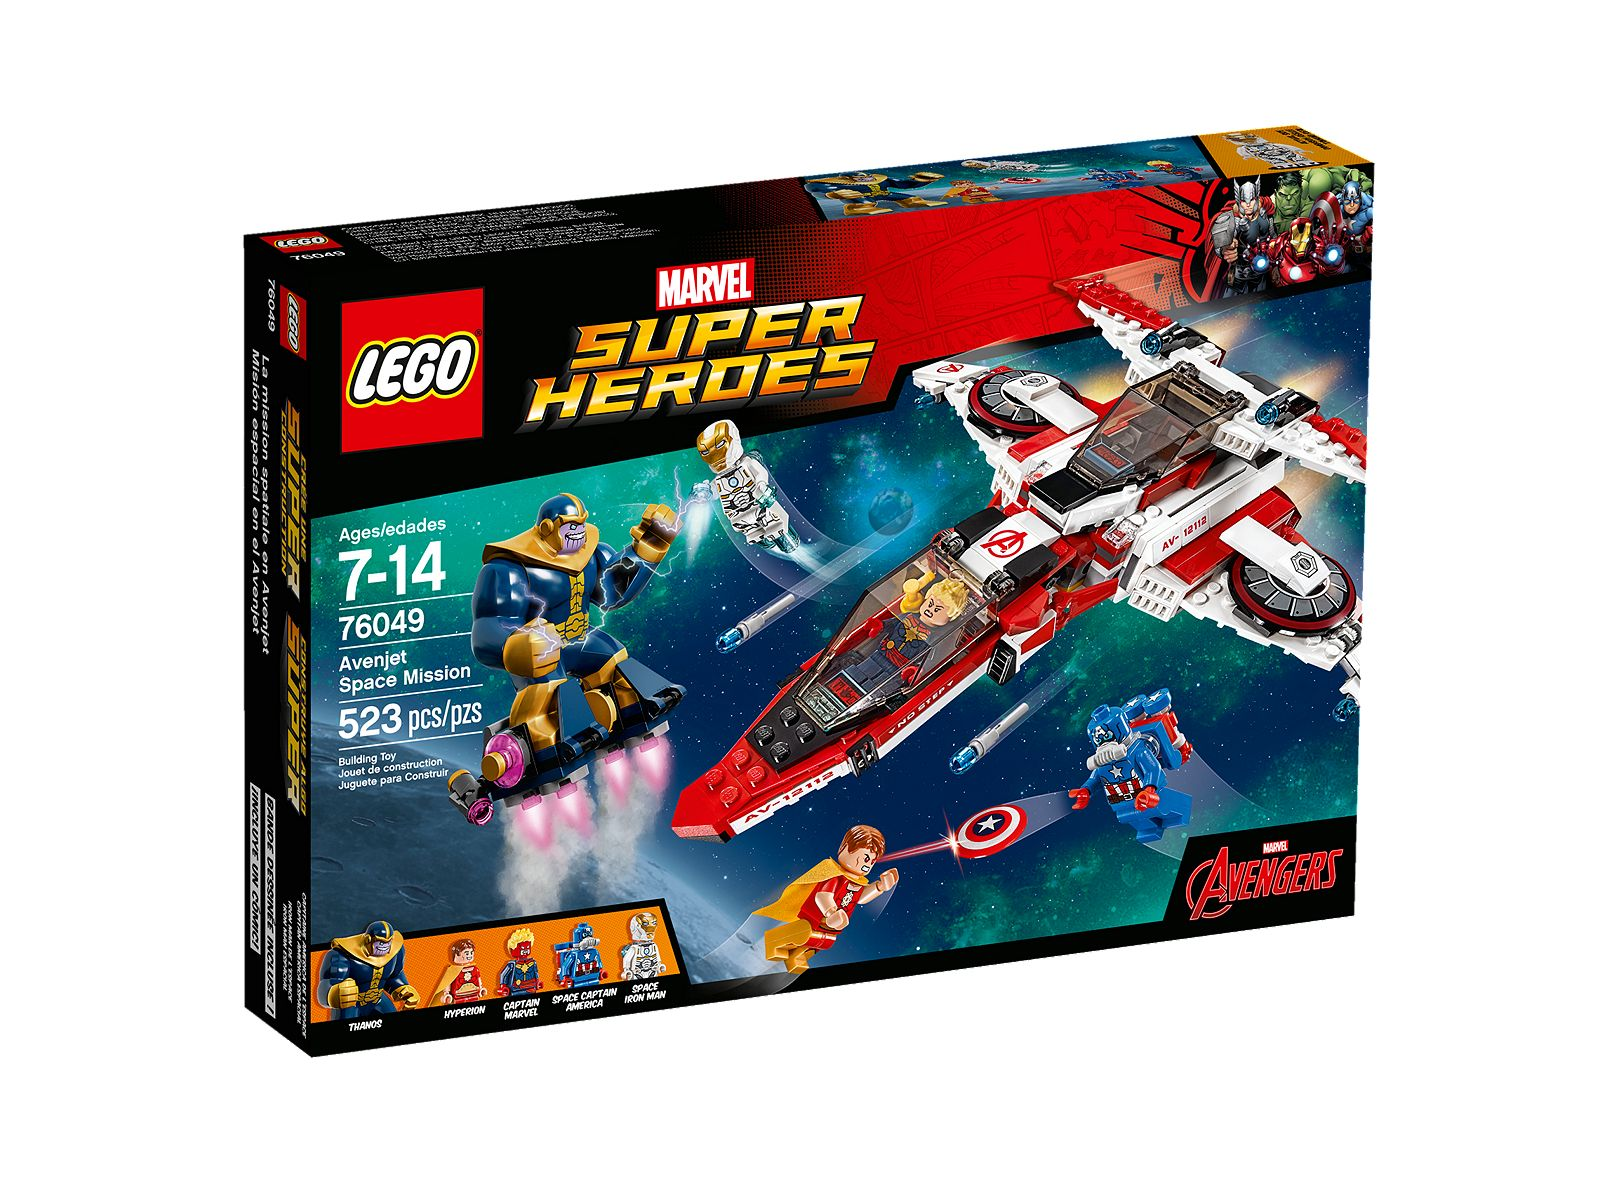 Lego 76048 And 76049 Marvel Super Heroes Sets Uploaded To